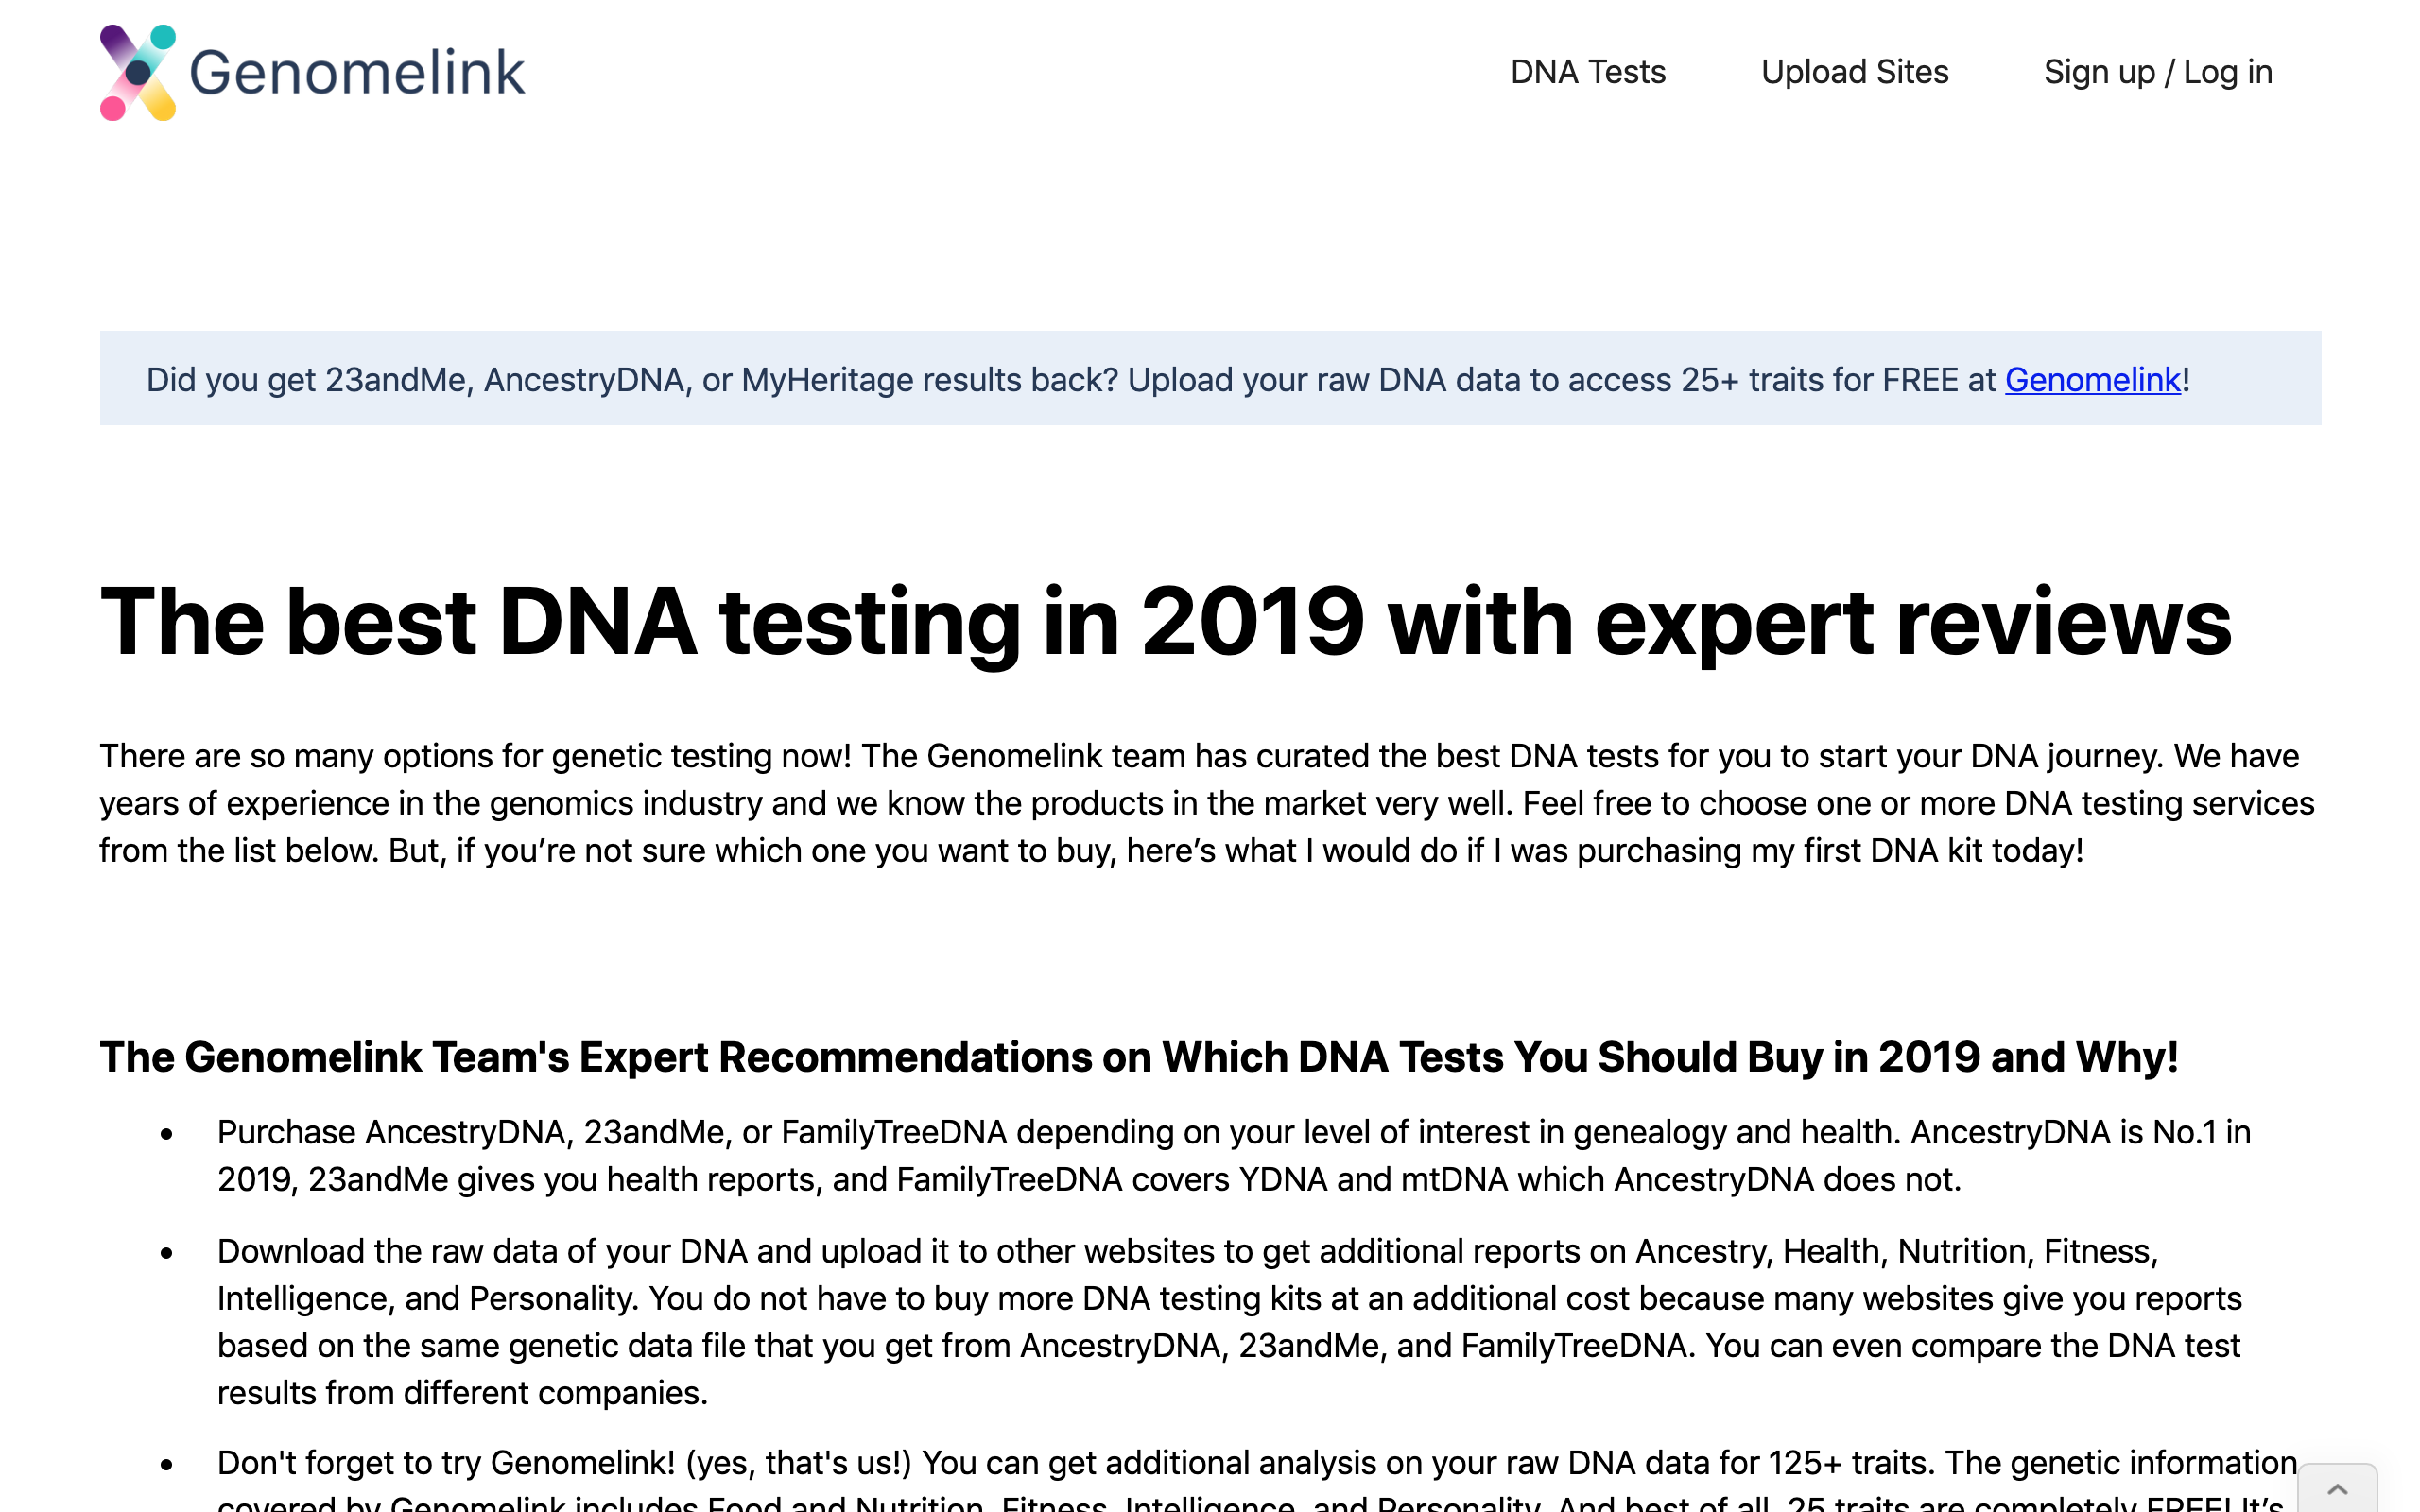 The best DNA testing in 2019 - Ancestry and even more!